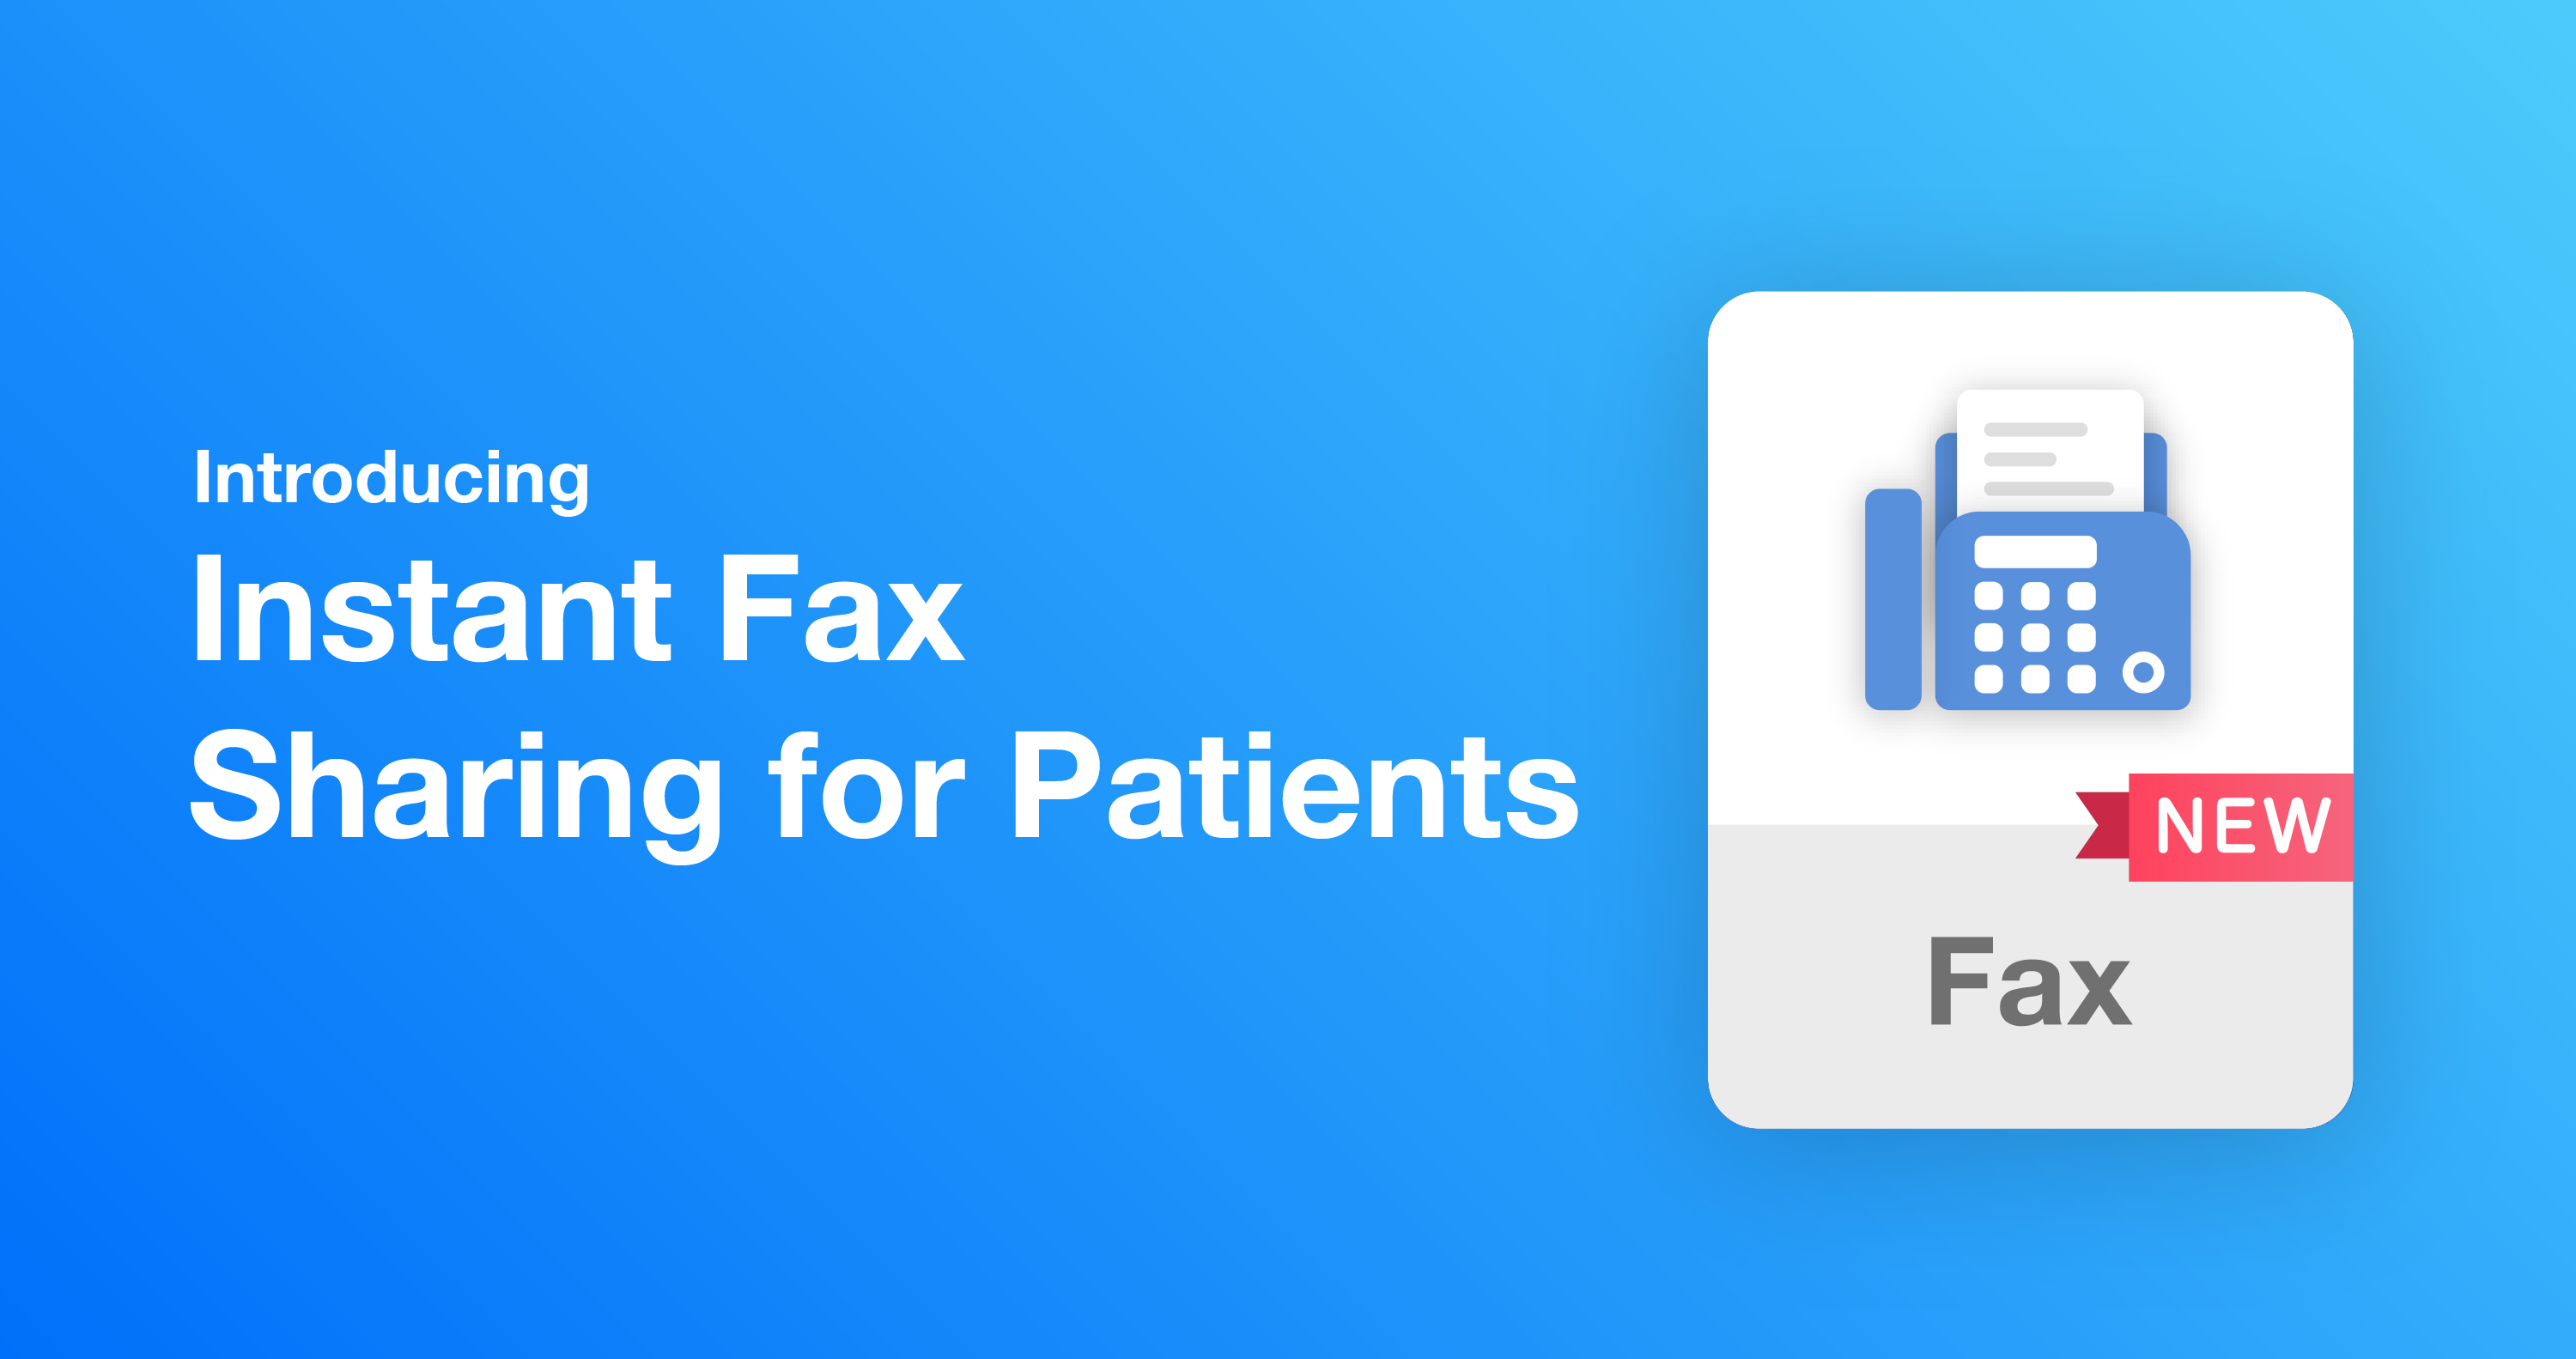 Patients Can Now Fax Imaging Access to Any Physician, Right From PocketHealth